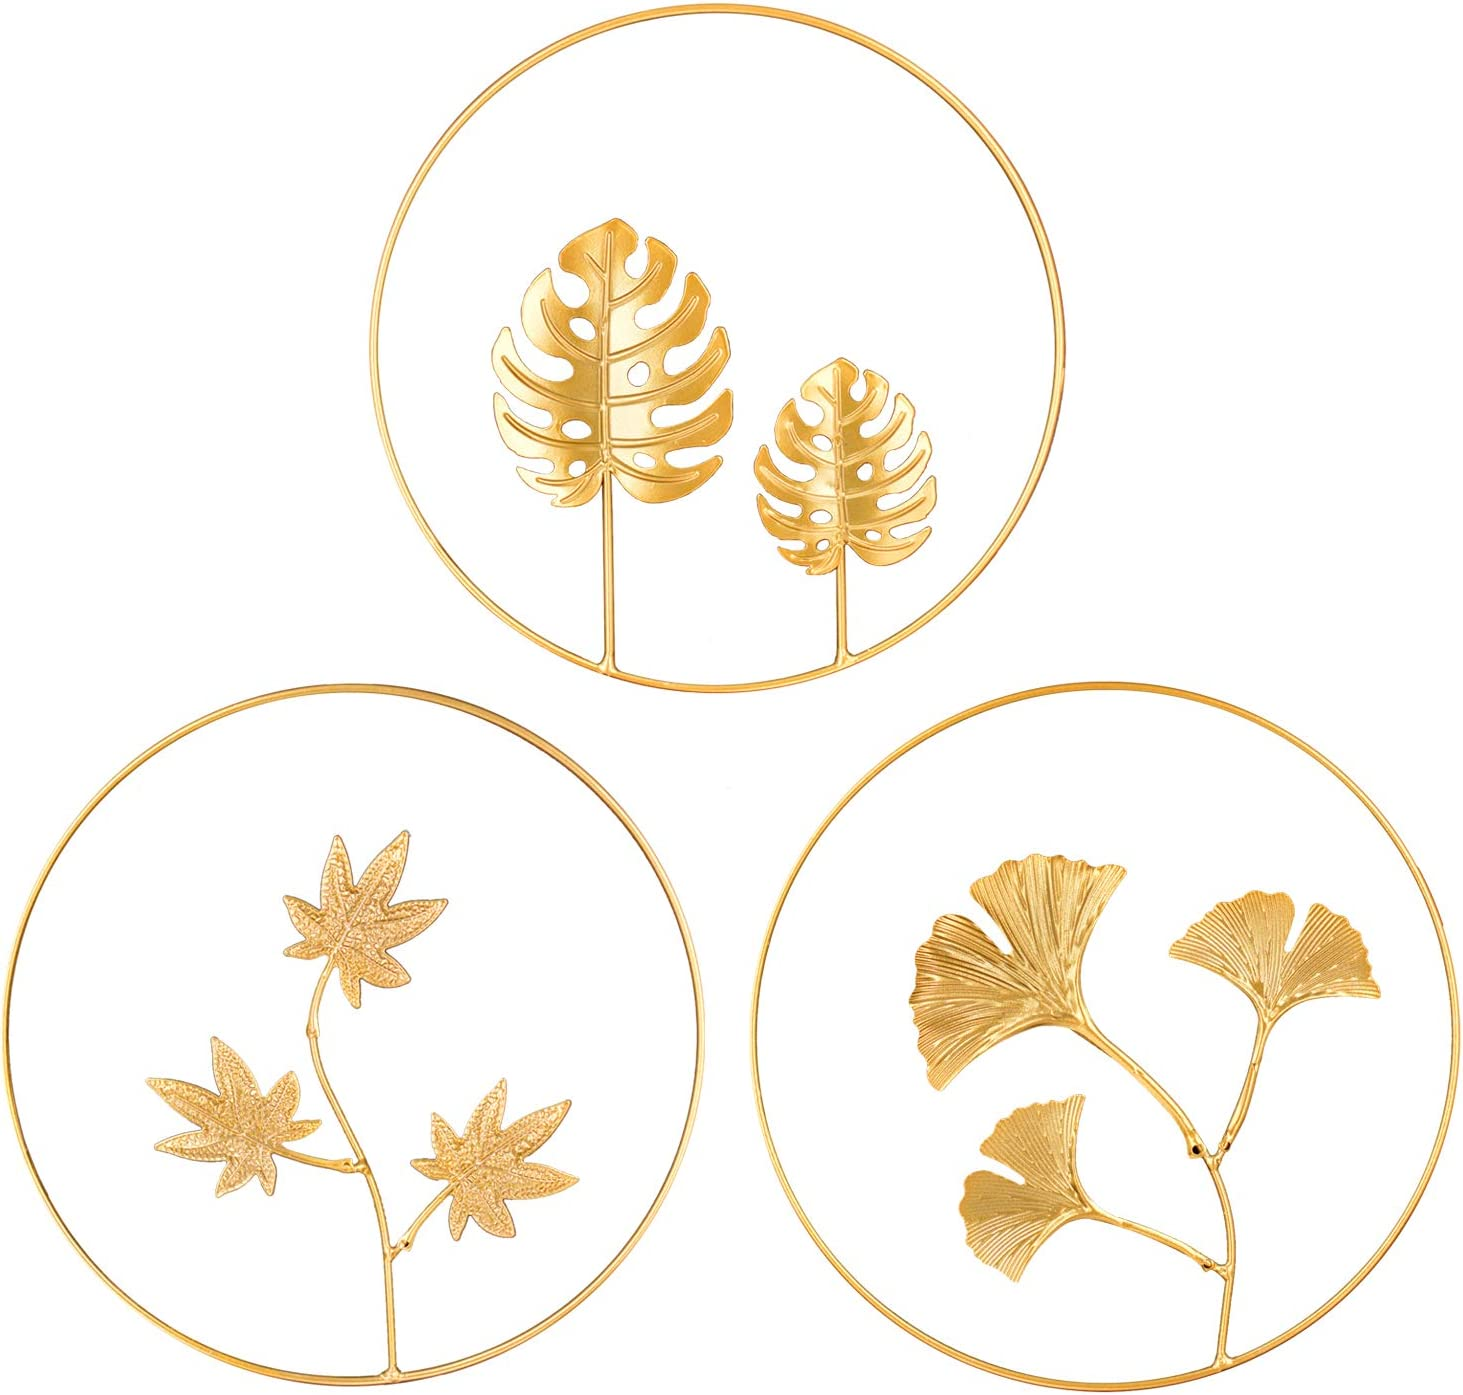 OperSeven 3Pcs Iron Wall Sculptures,Metal Round Room Decor and Home Decor with Hanging Leaf Gingko Ornaments Easy Installation Great for Bedroom Hotel Wall Decoration (3 different leaves)